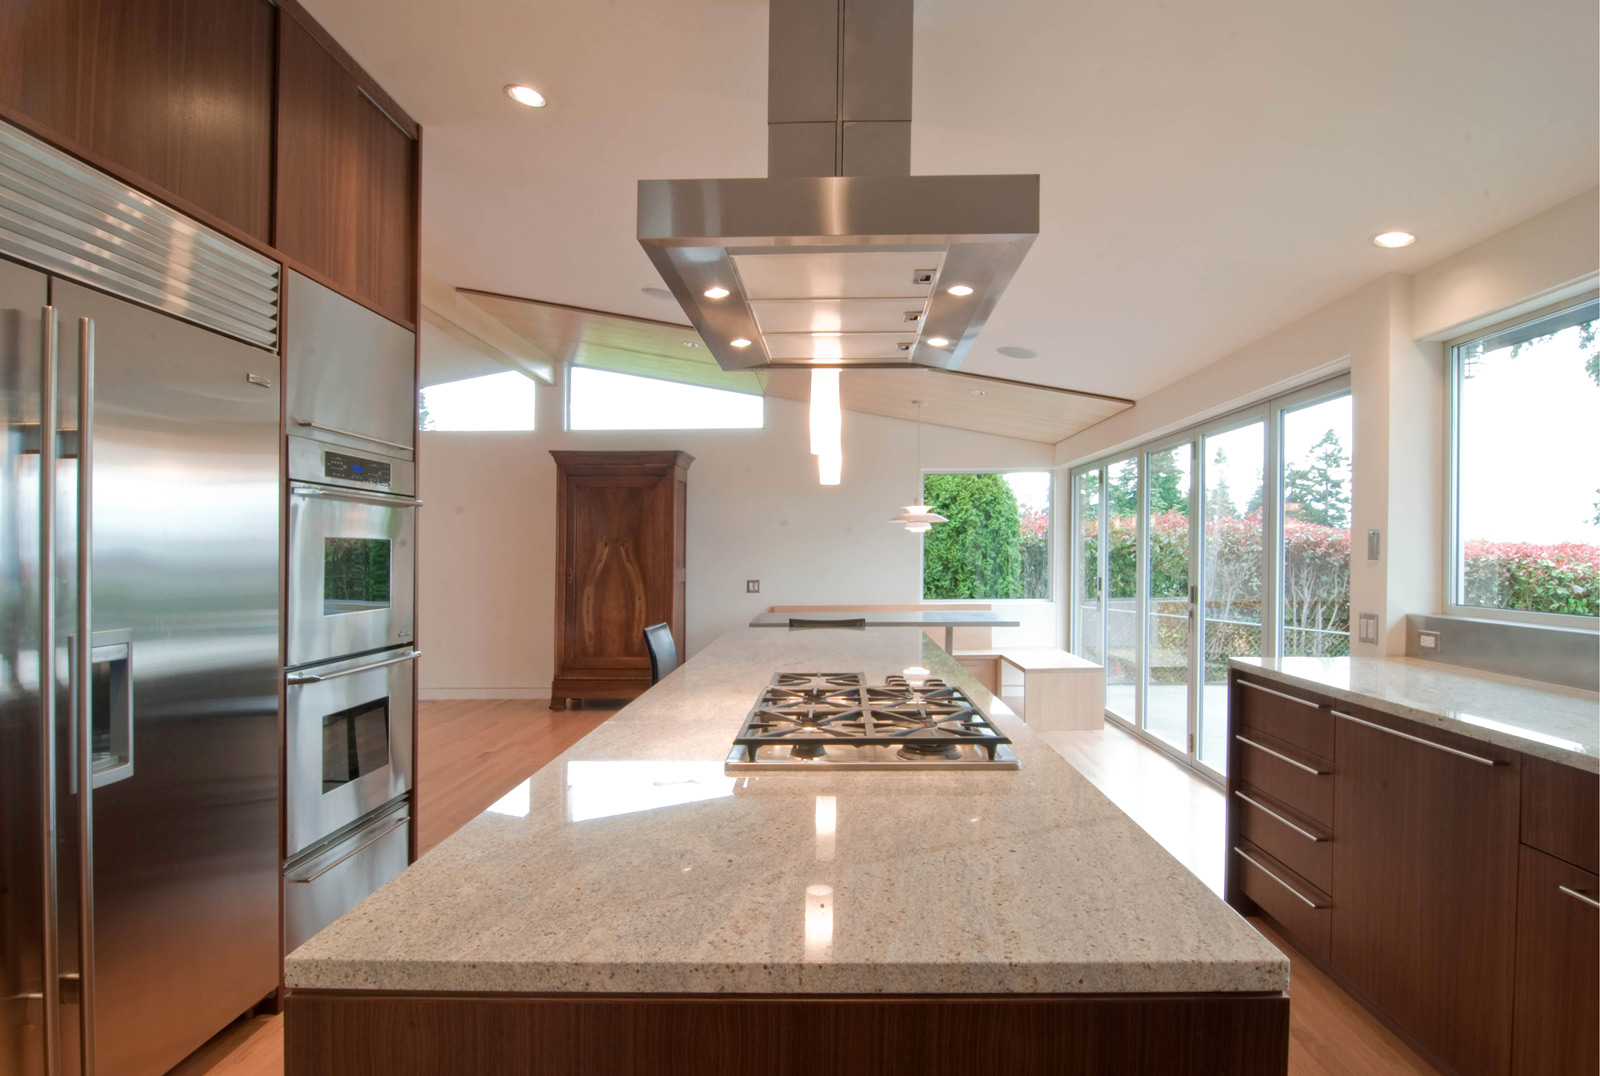 Design strategies for kitchen hood venting build blog for Kitchen ventilation ideas